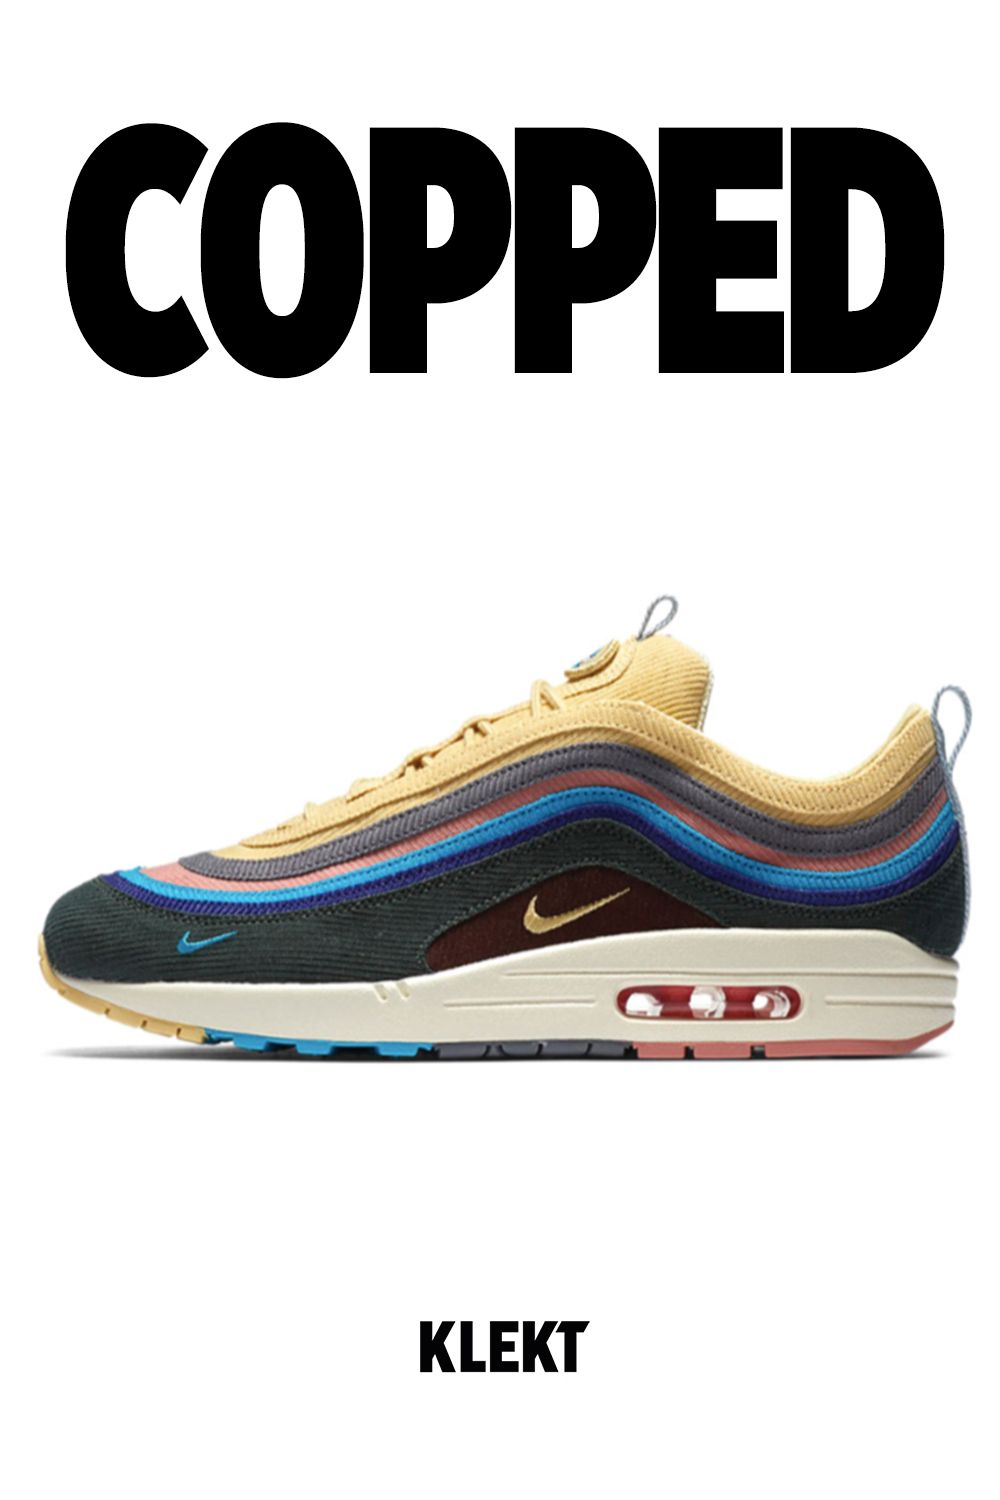 save off f4673 1847f The Nike Air Max 97 1 Sean Wotherspoon is one of the most wanted limited